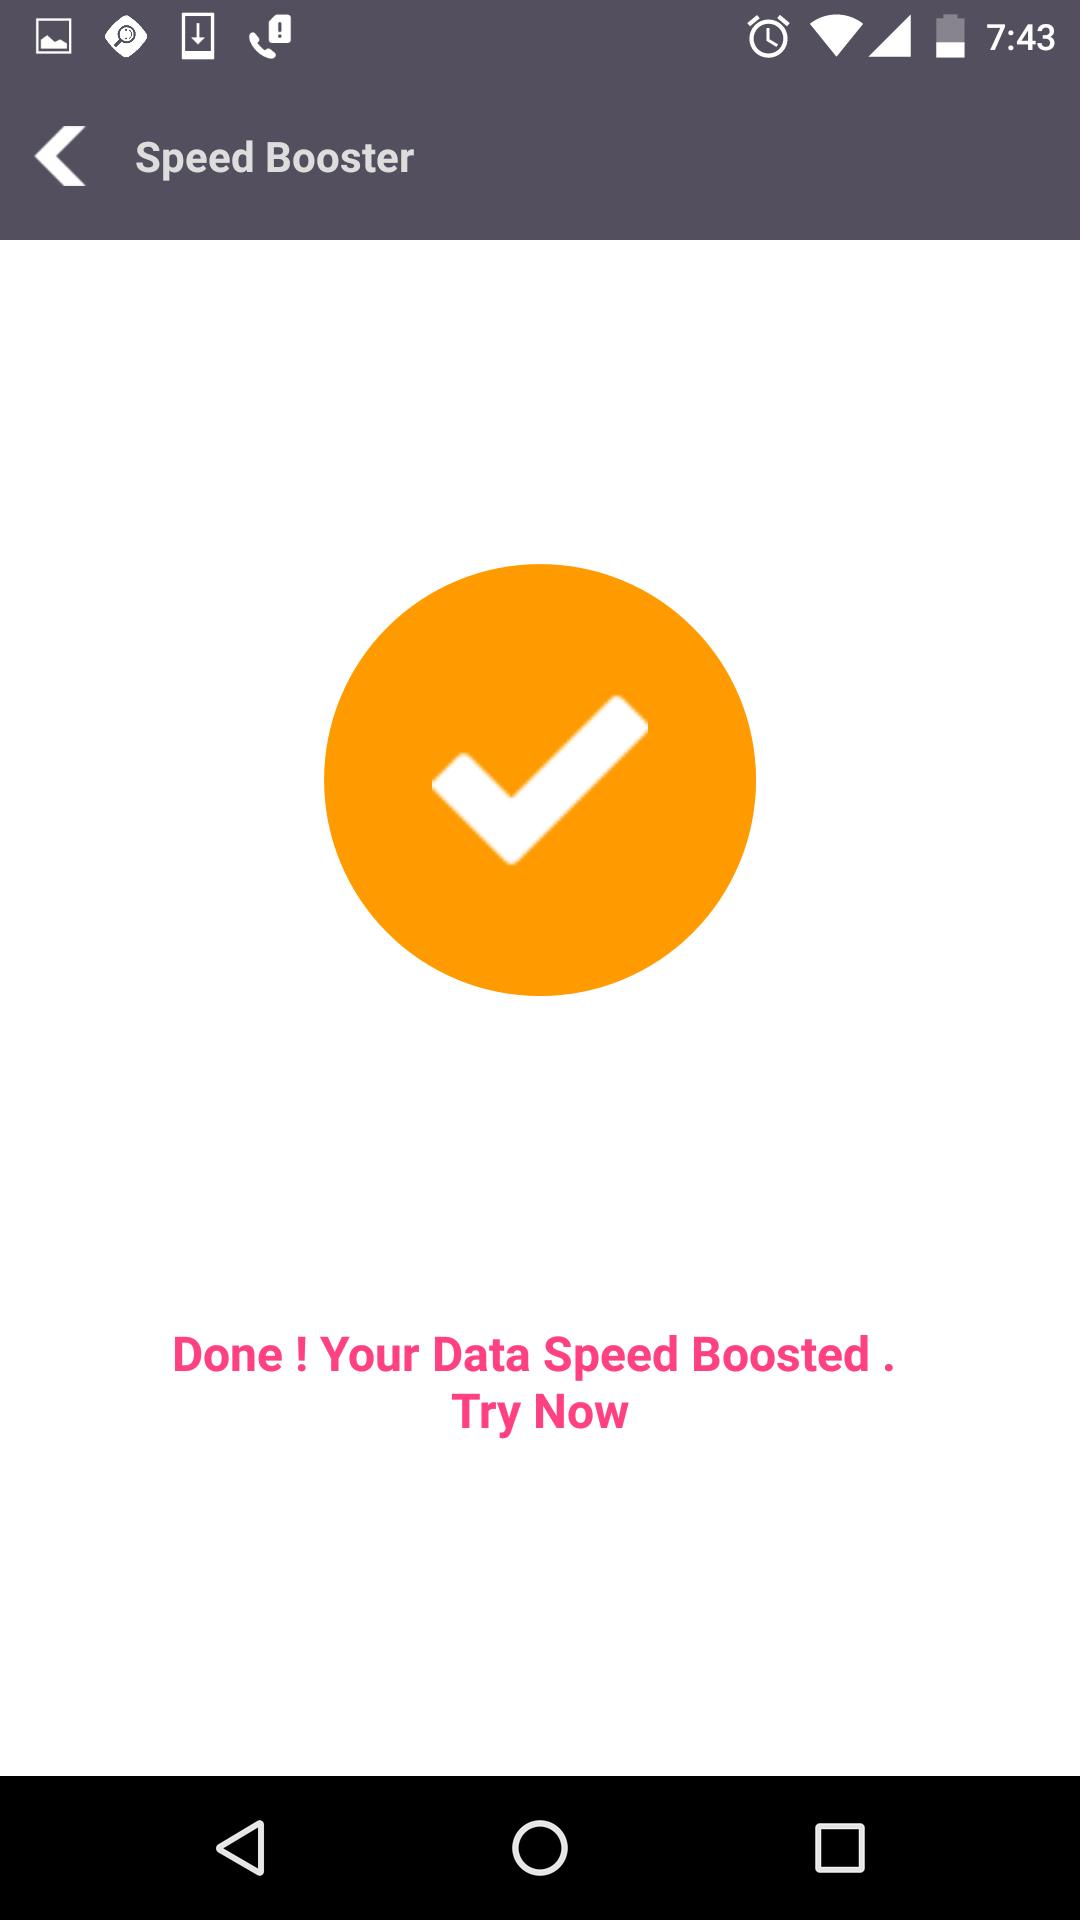 4G&VoLTE Speed check & booster for Android - APK Download